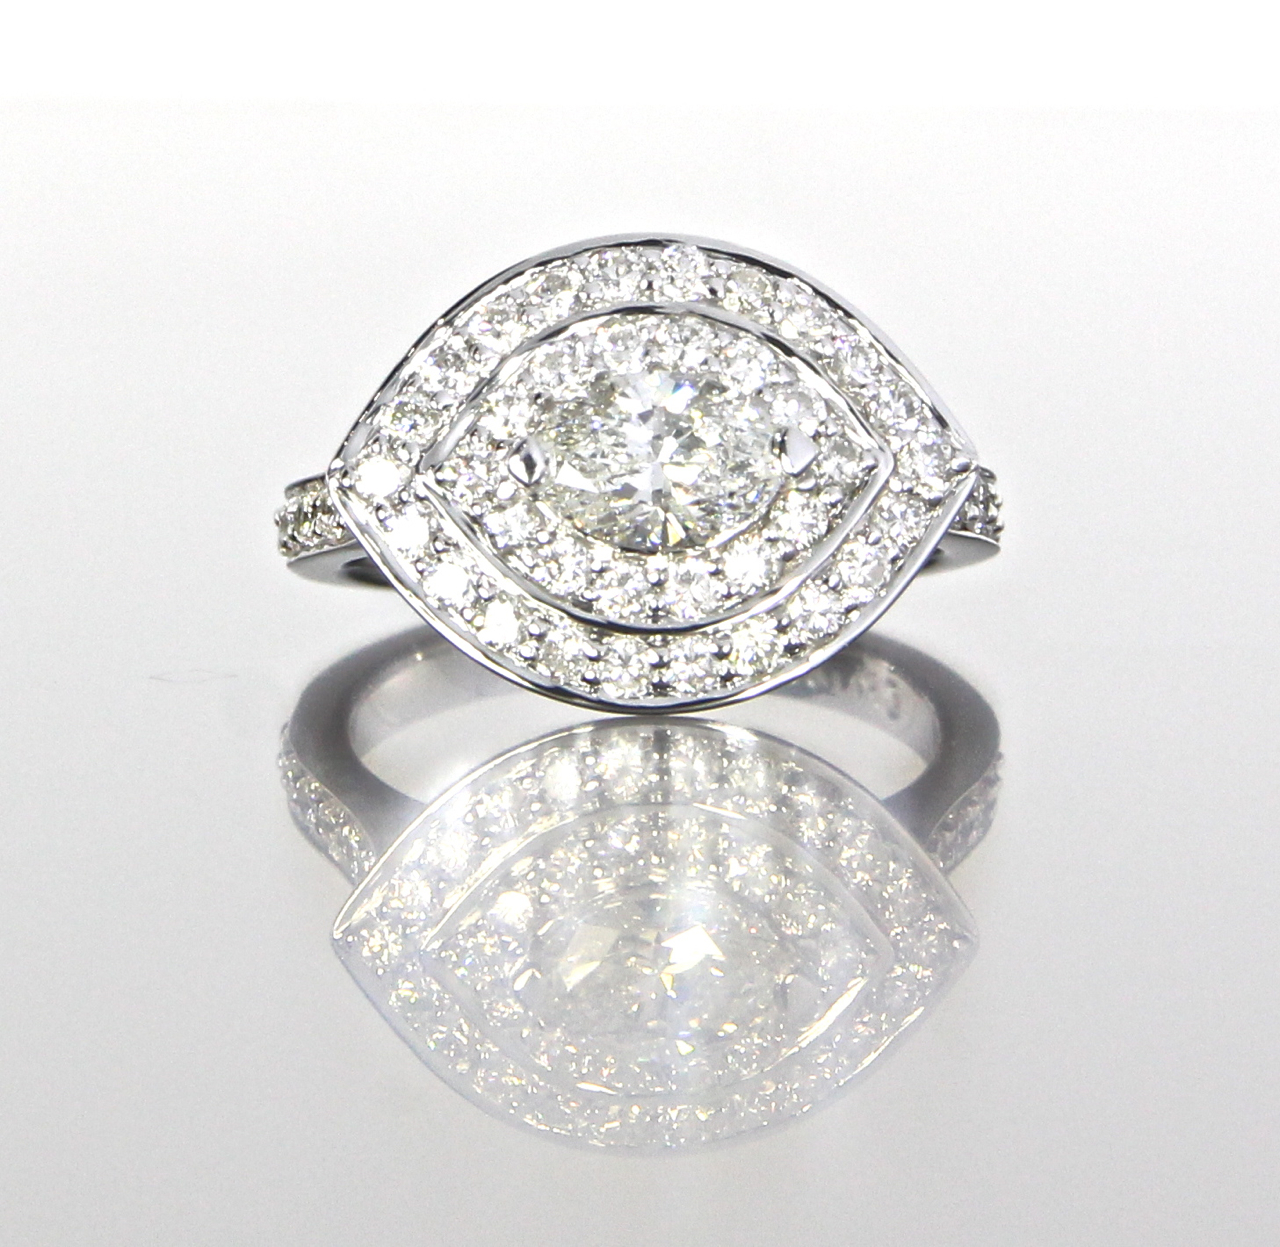 unique-marquise-diamond-double-halo-engagement-ring-craft-revival-jewelry-store-grand-rapids